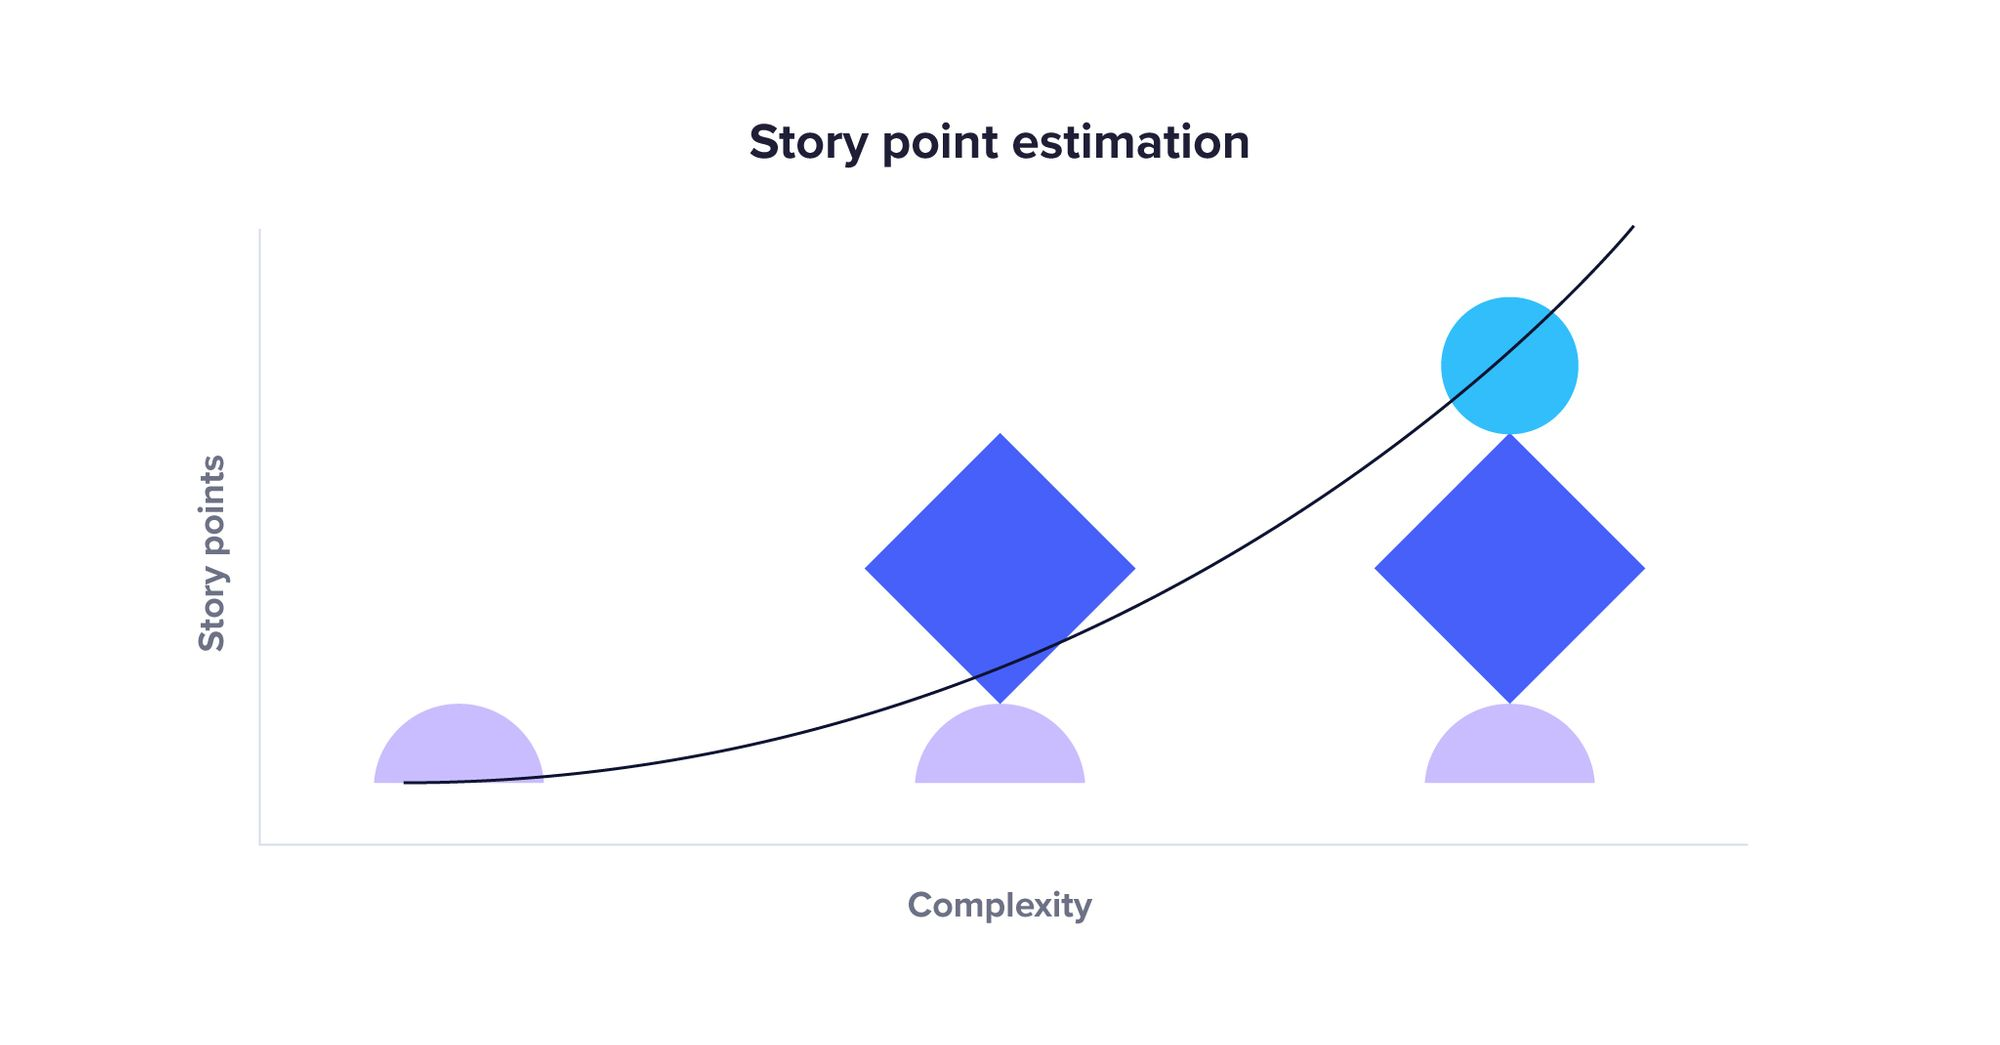 Diagram of story points for complexity